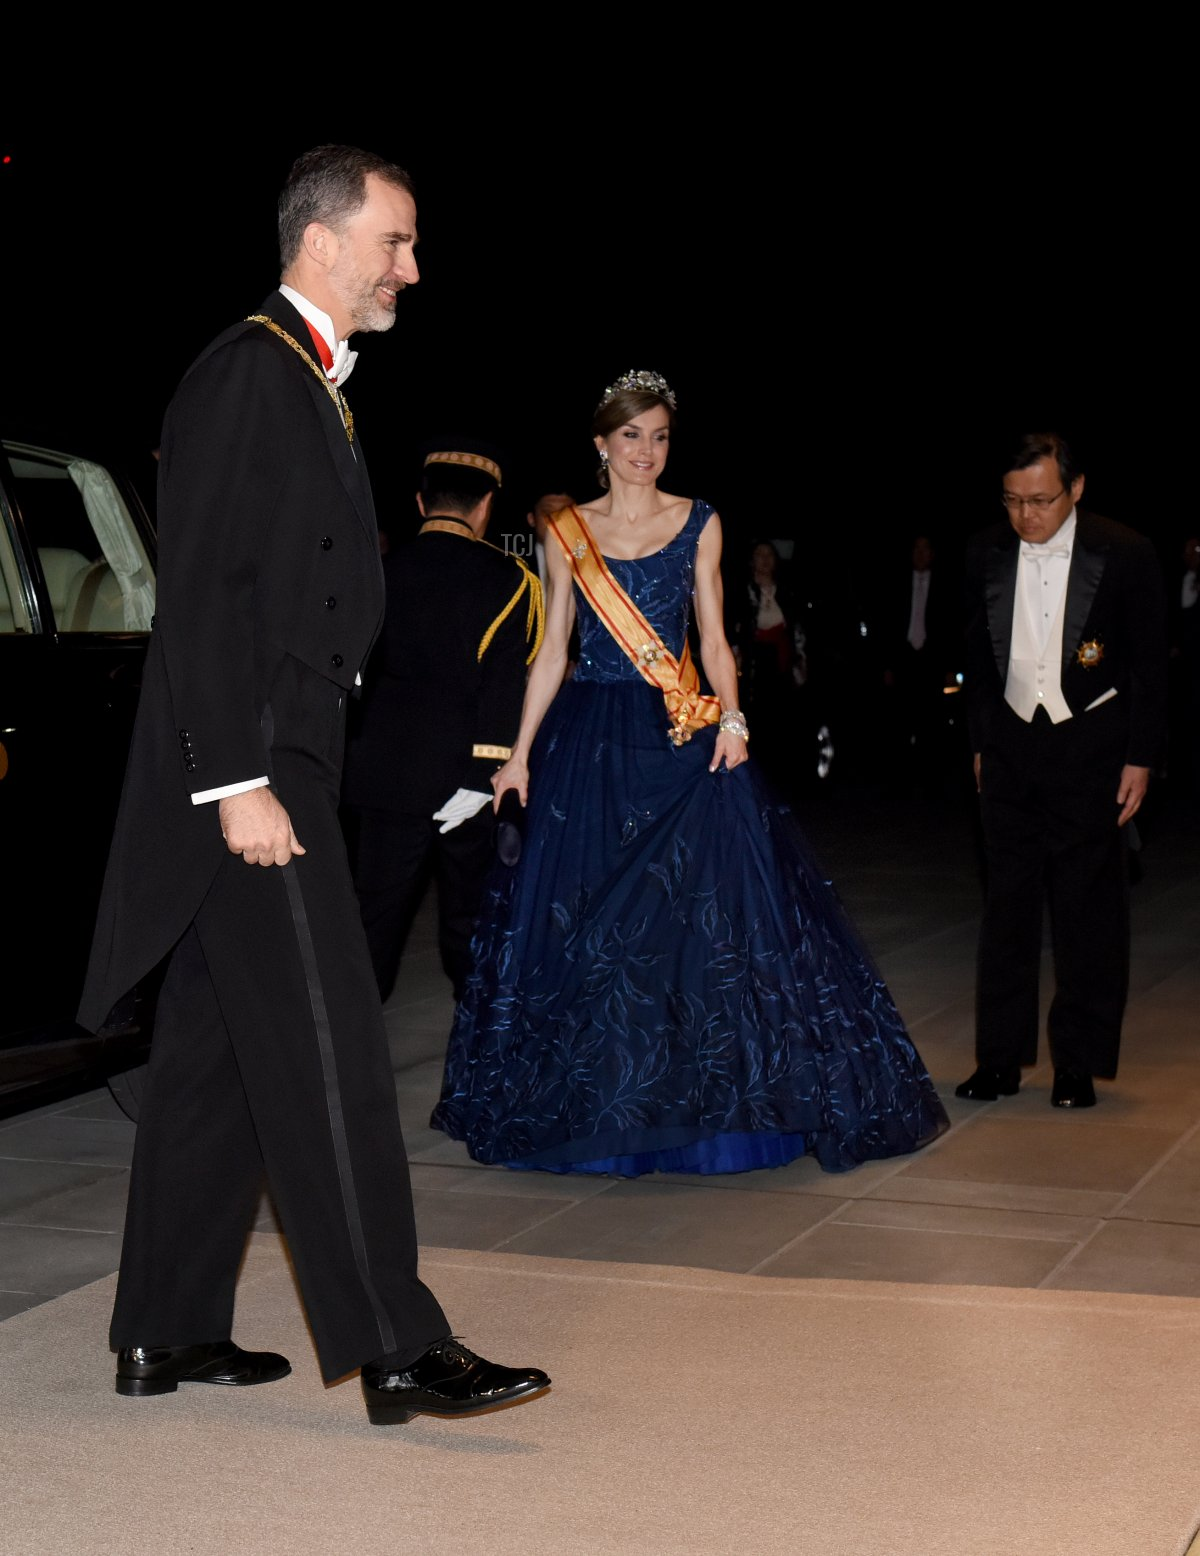 Spanish King Felipe VI (L) and Queen Letizia (C) arrive at the Imperial Palace in Tokyo for the state banquet hosted by Japanese Emperor Akihito and Empress Michiko on April 5, 2017